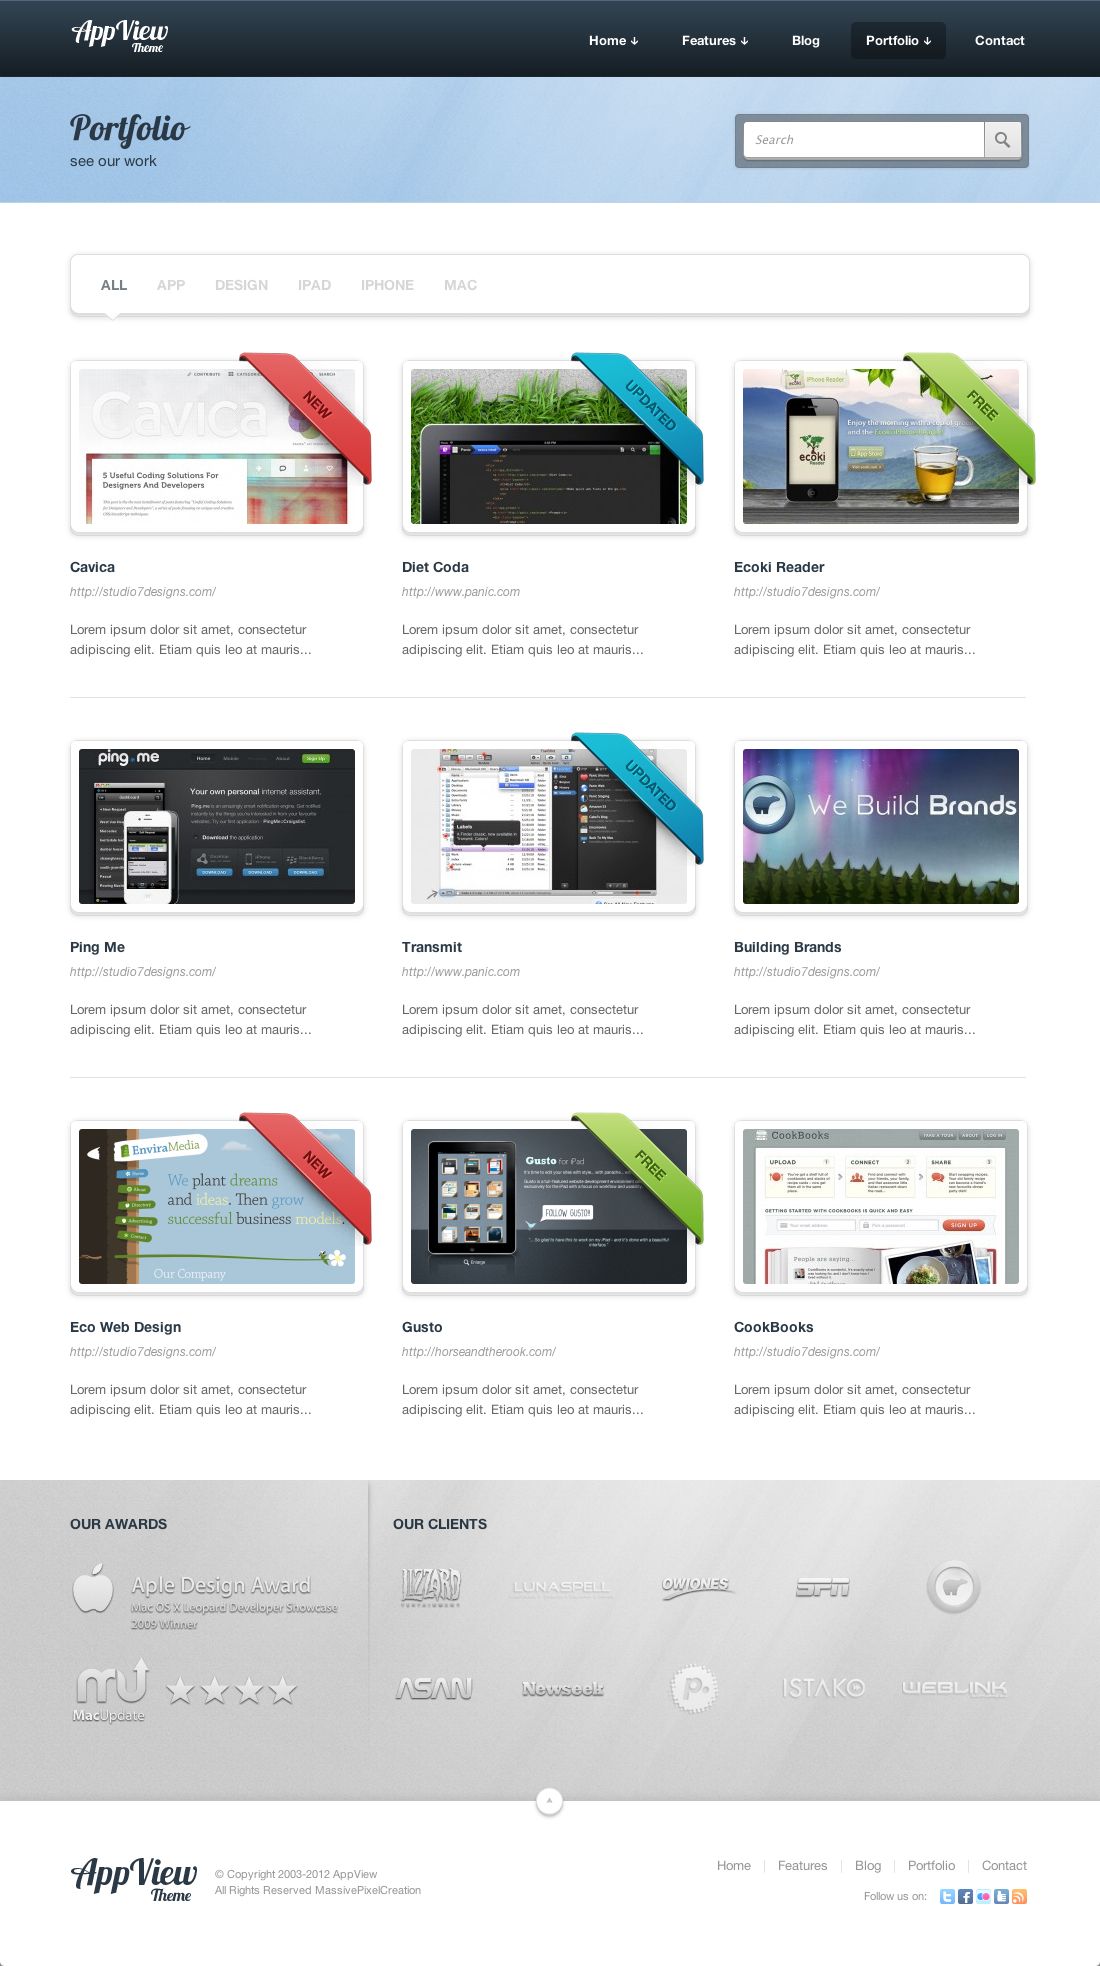 AppView Professional Portfolio WordPress Theme - Screenshot 1 - Portfolio 3 Columns No Sidebar